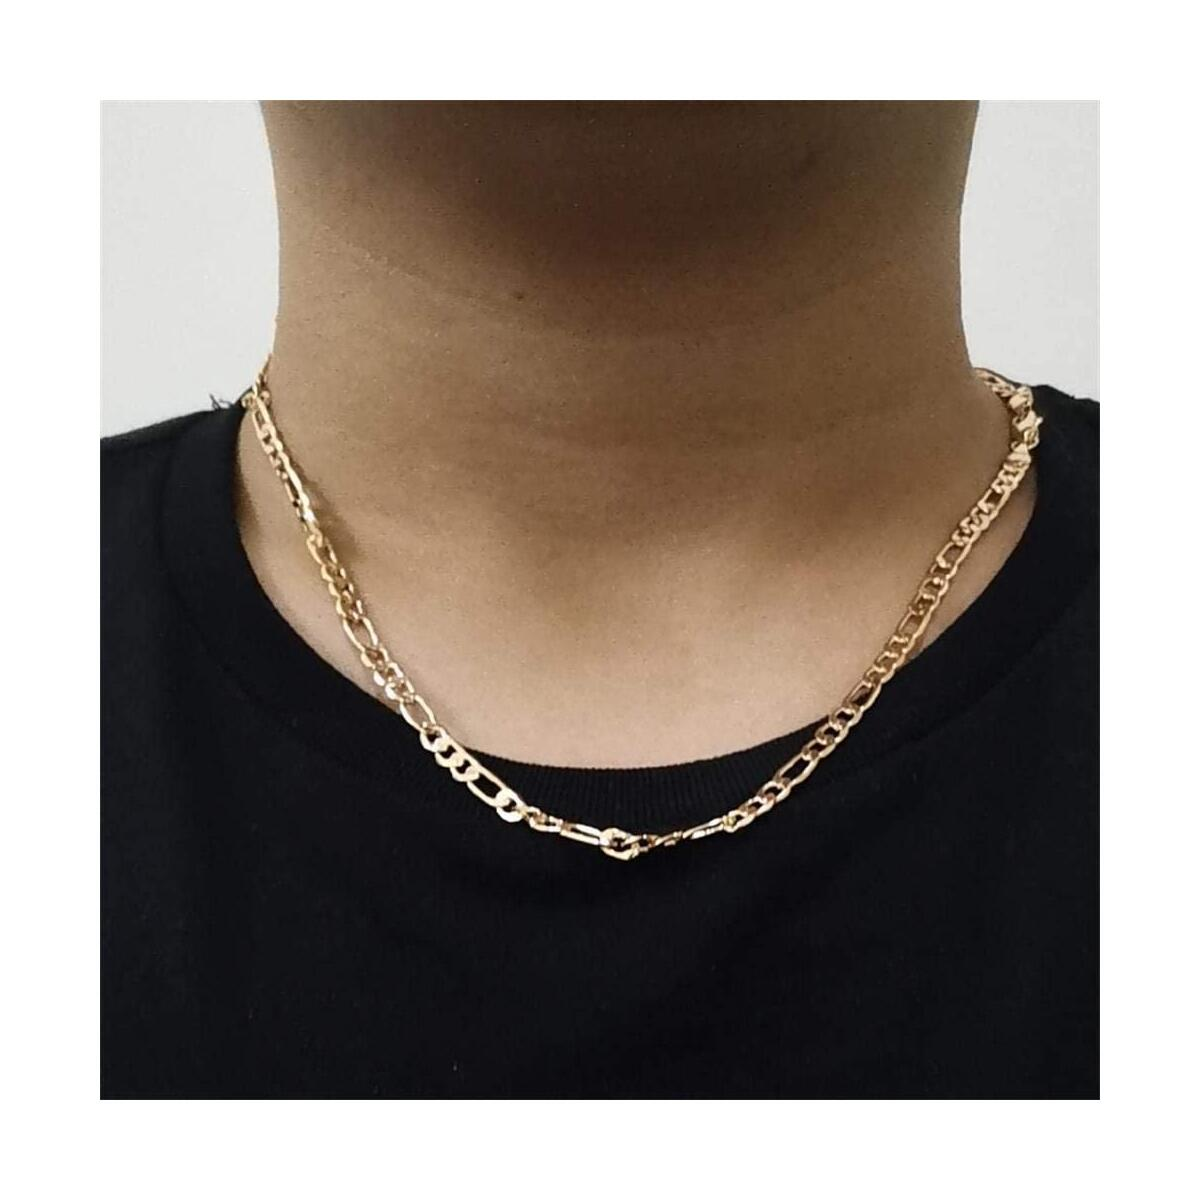 gold cuban chain gold necklace men necklace 24k real gold plated necklace choker chain for men and women girls for gifts